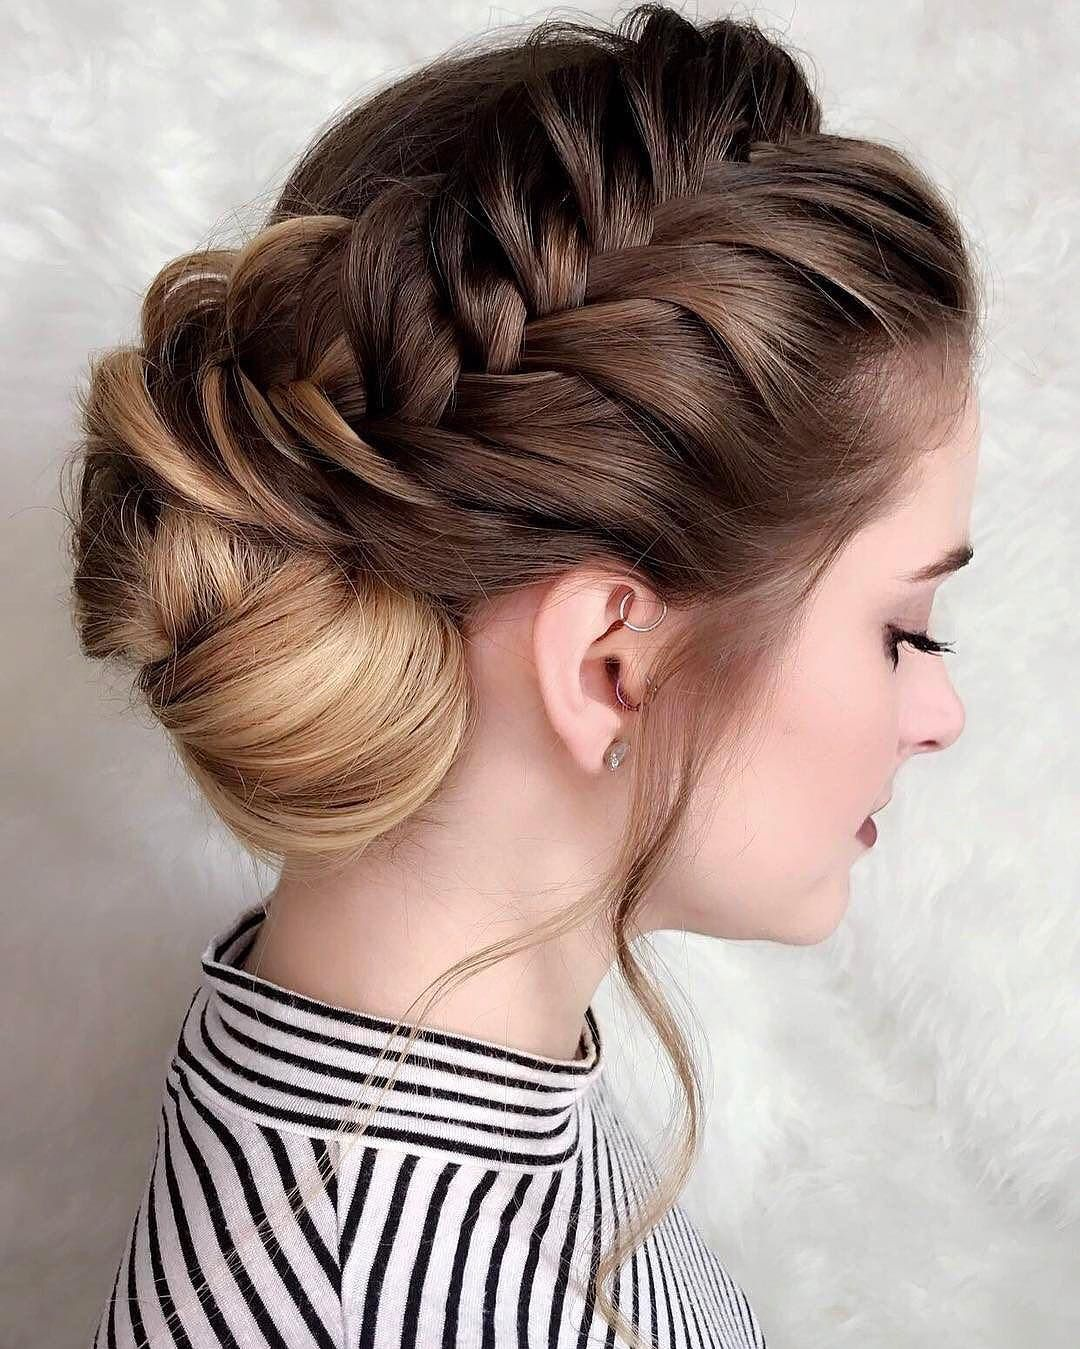 french braids in the front, chignon in the back #humpdayhair